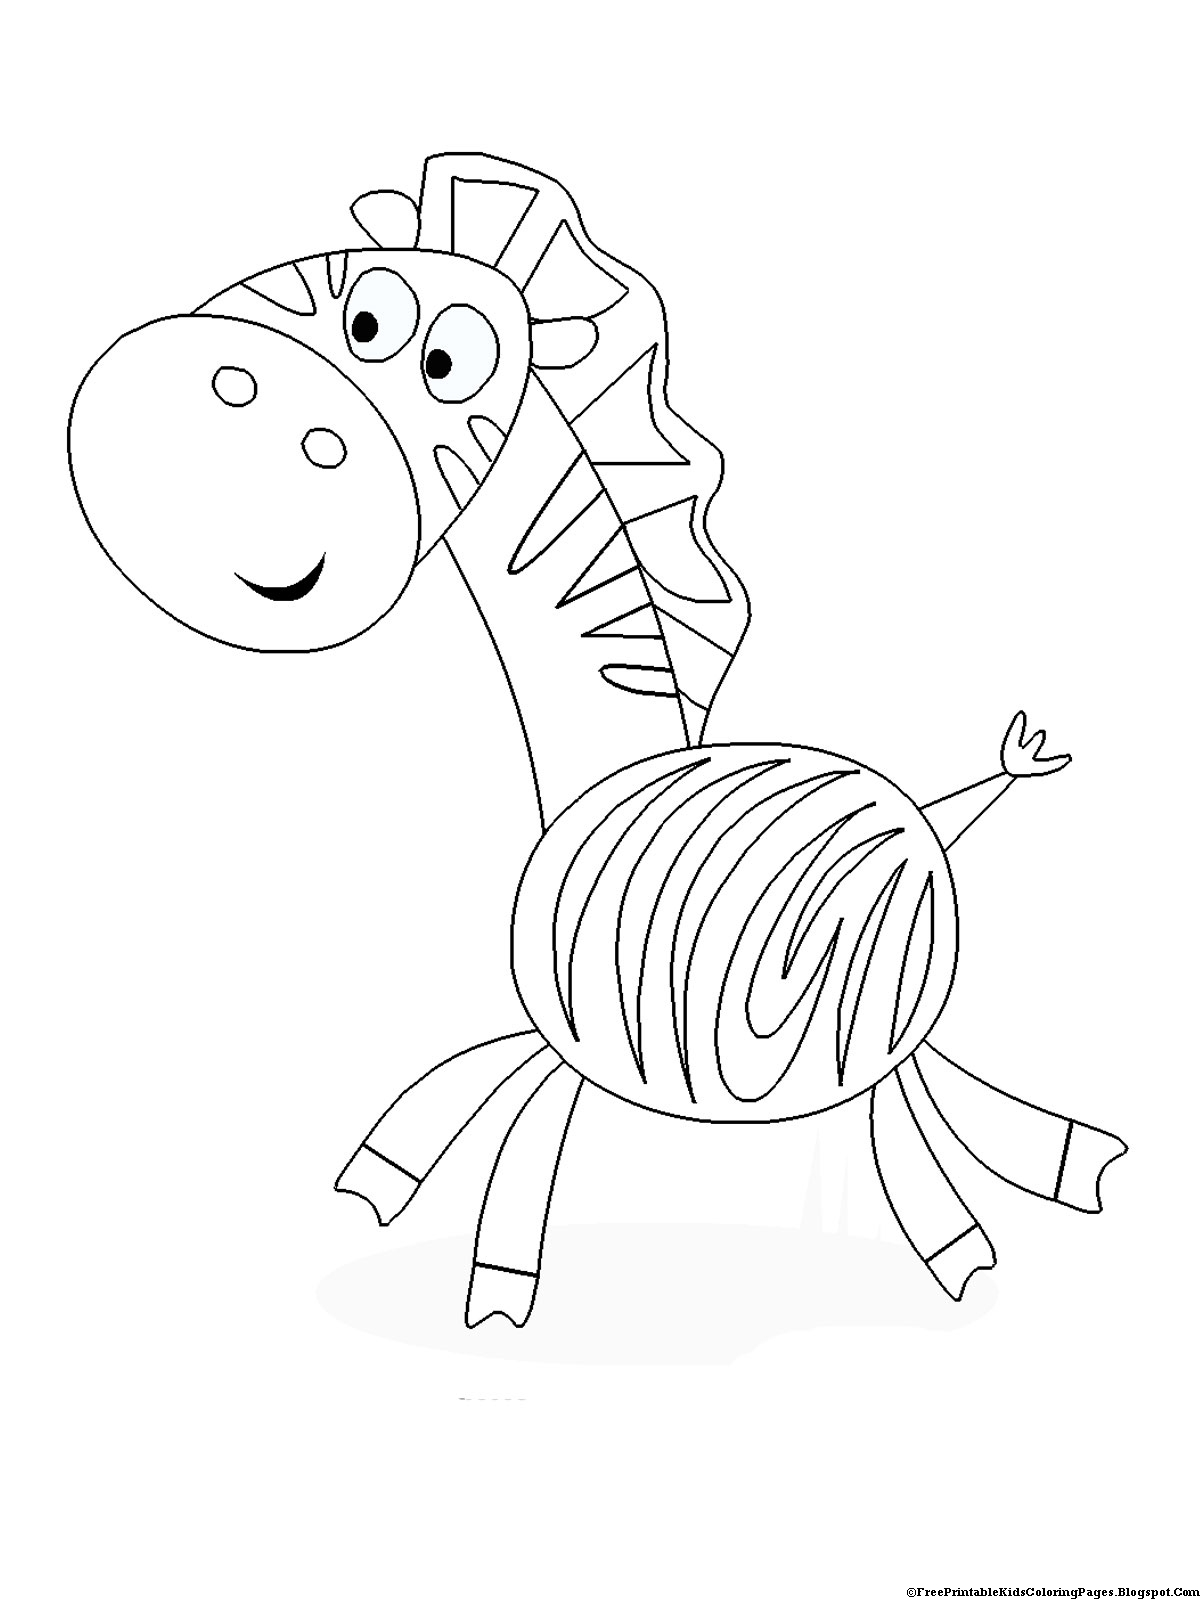 printable colouring pages zebra coloring pages free printable kids coloring pages printable colouring pages